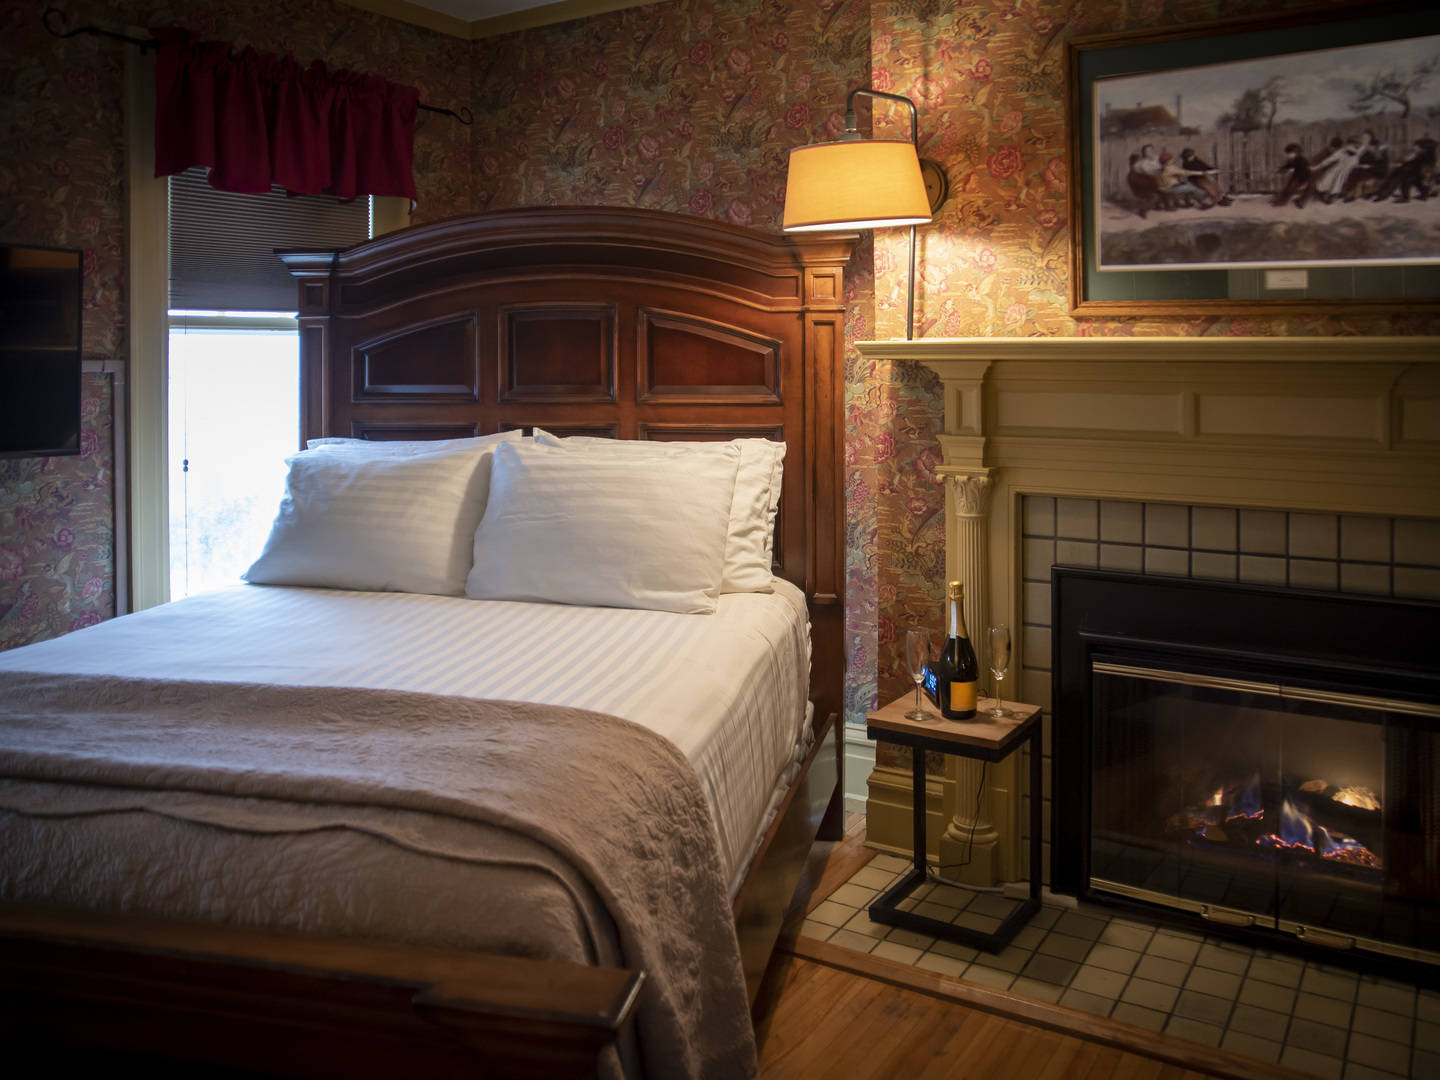 Duluth Bed and Breakfast